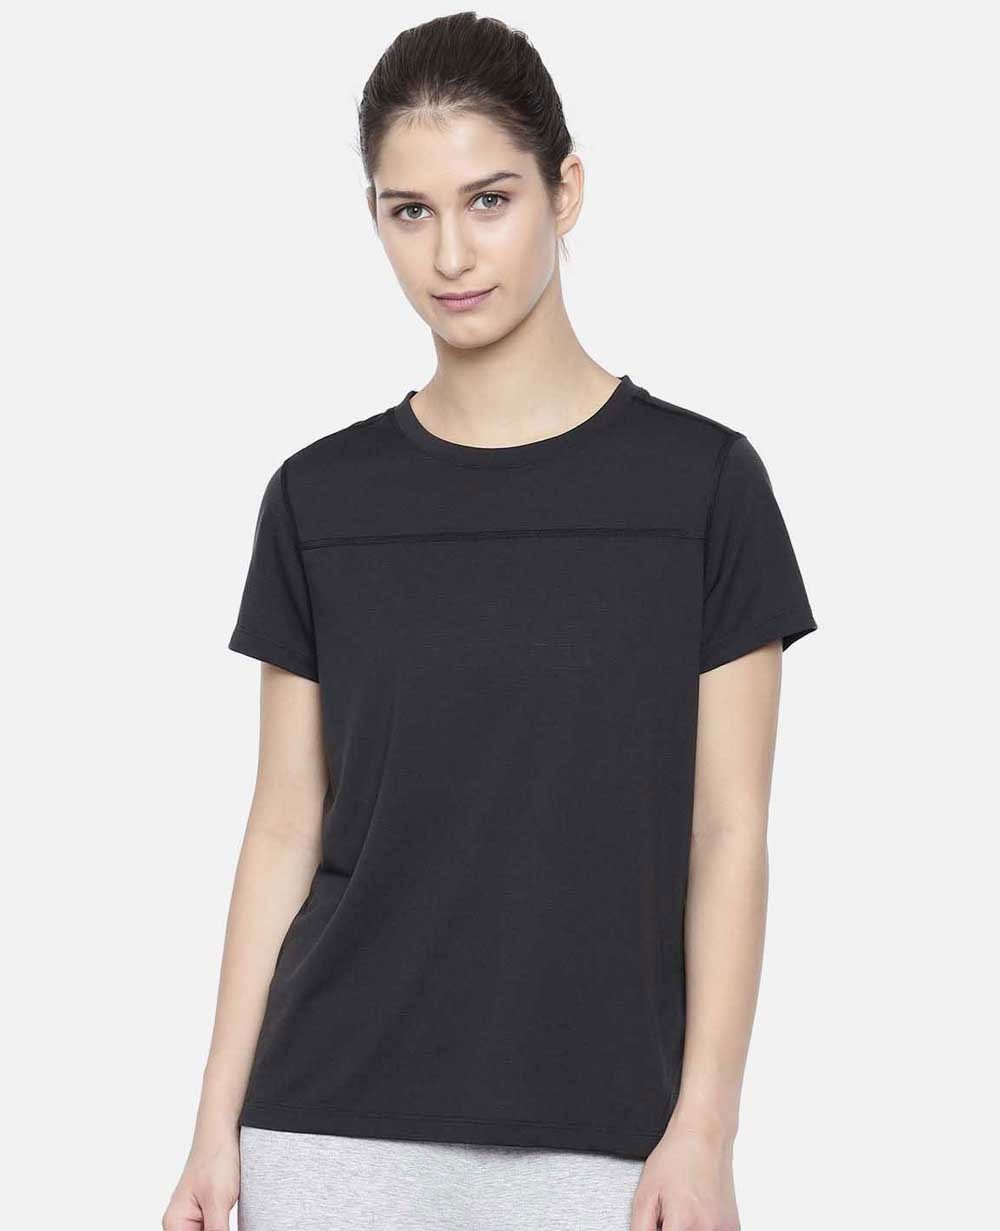 Black Solid Round Neck Dry-Cell T-Shirt DS-11501